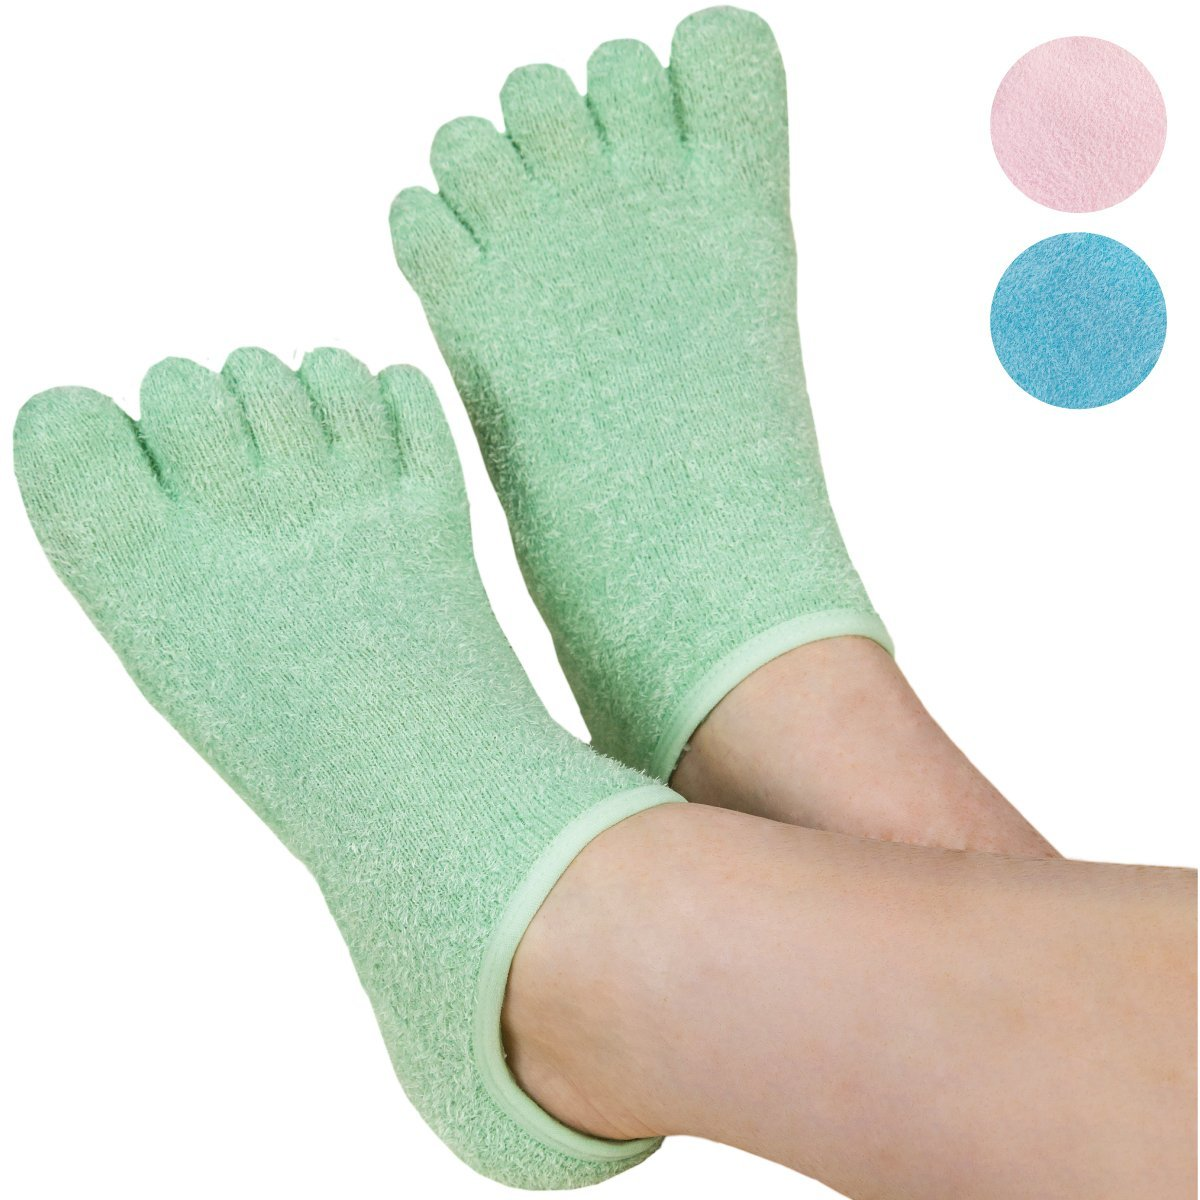 LE EMILIE 5 Toe Moisturizing Gel Socks   Perfect for Healing Dry Cracked Heels and Feet   Infused with Aromatherapy Blend of Lavender and Jojoba Oil   1 Pair, Aqua